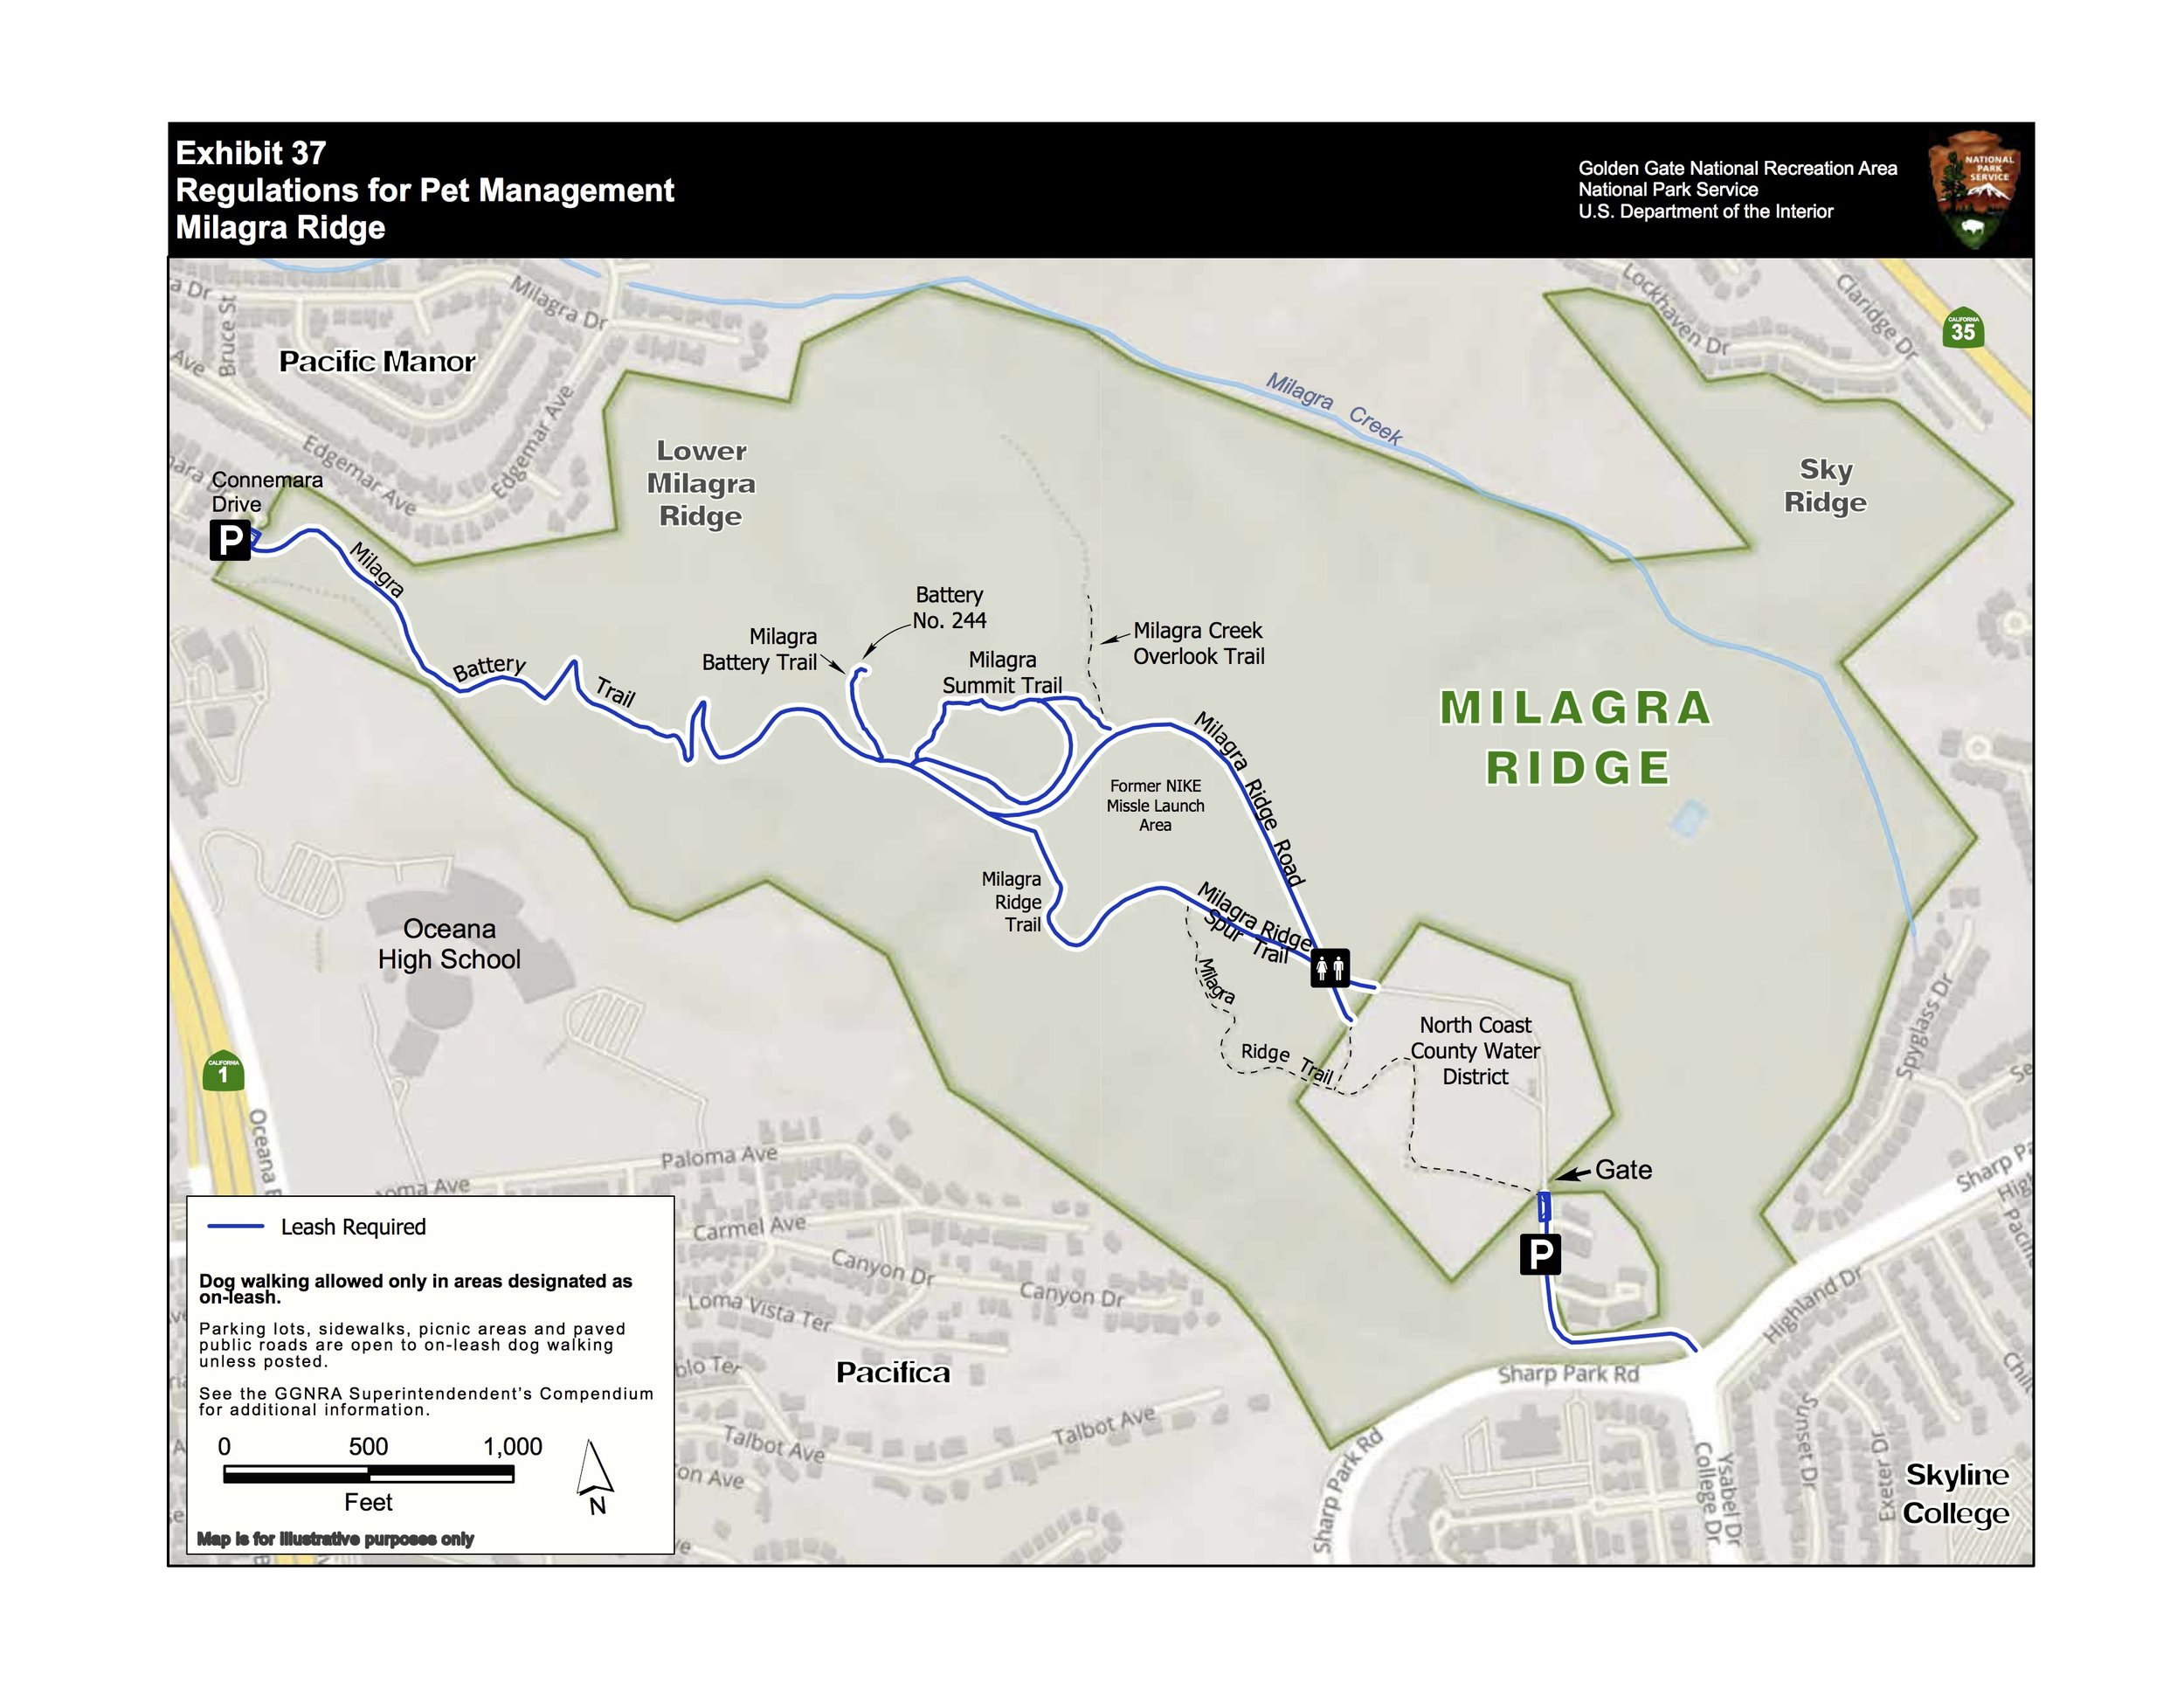 2019 Compendium map eliminating dog walking on the Milagra Creek Overlook Trail, part of the Milagra Ridge Trail, and part of Milagra Ridge Road. Dog owners would no longer be able to access Milagra Ridge from the park's southern entrance.